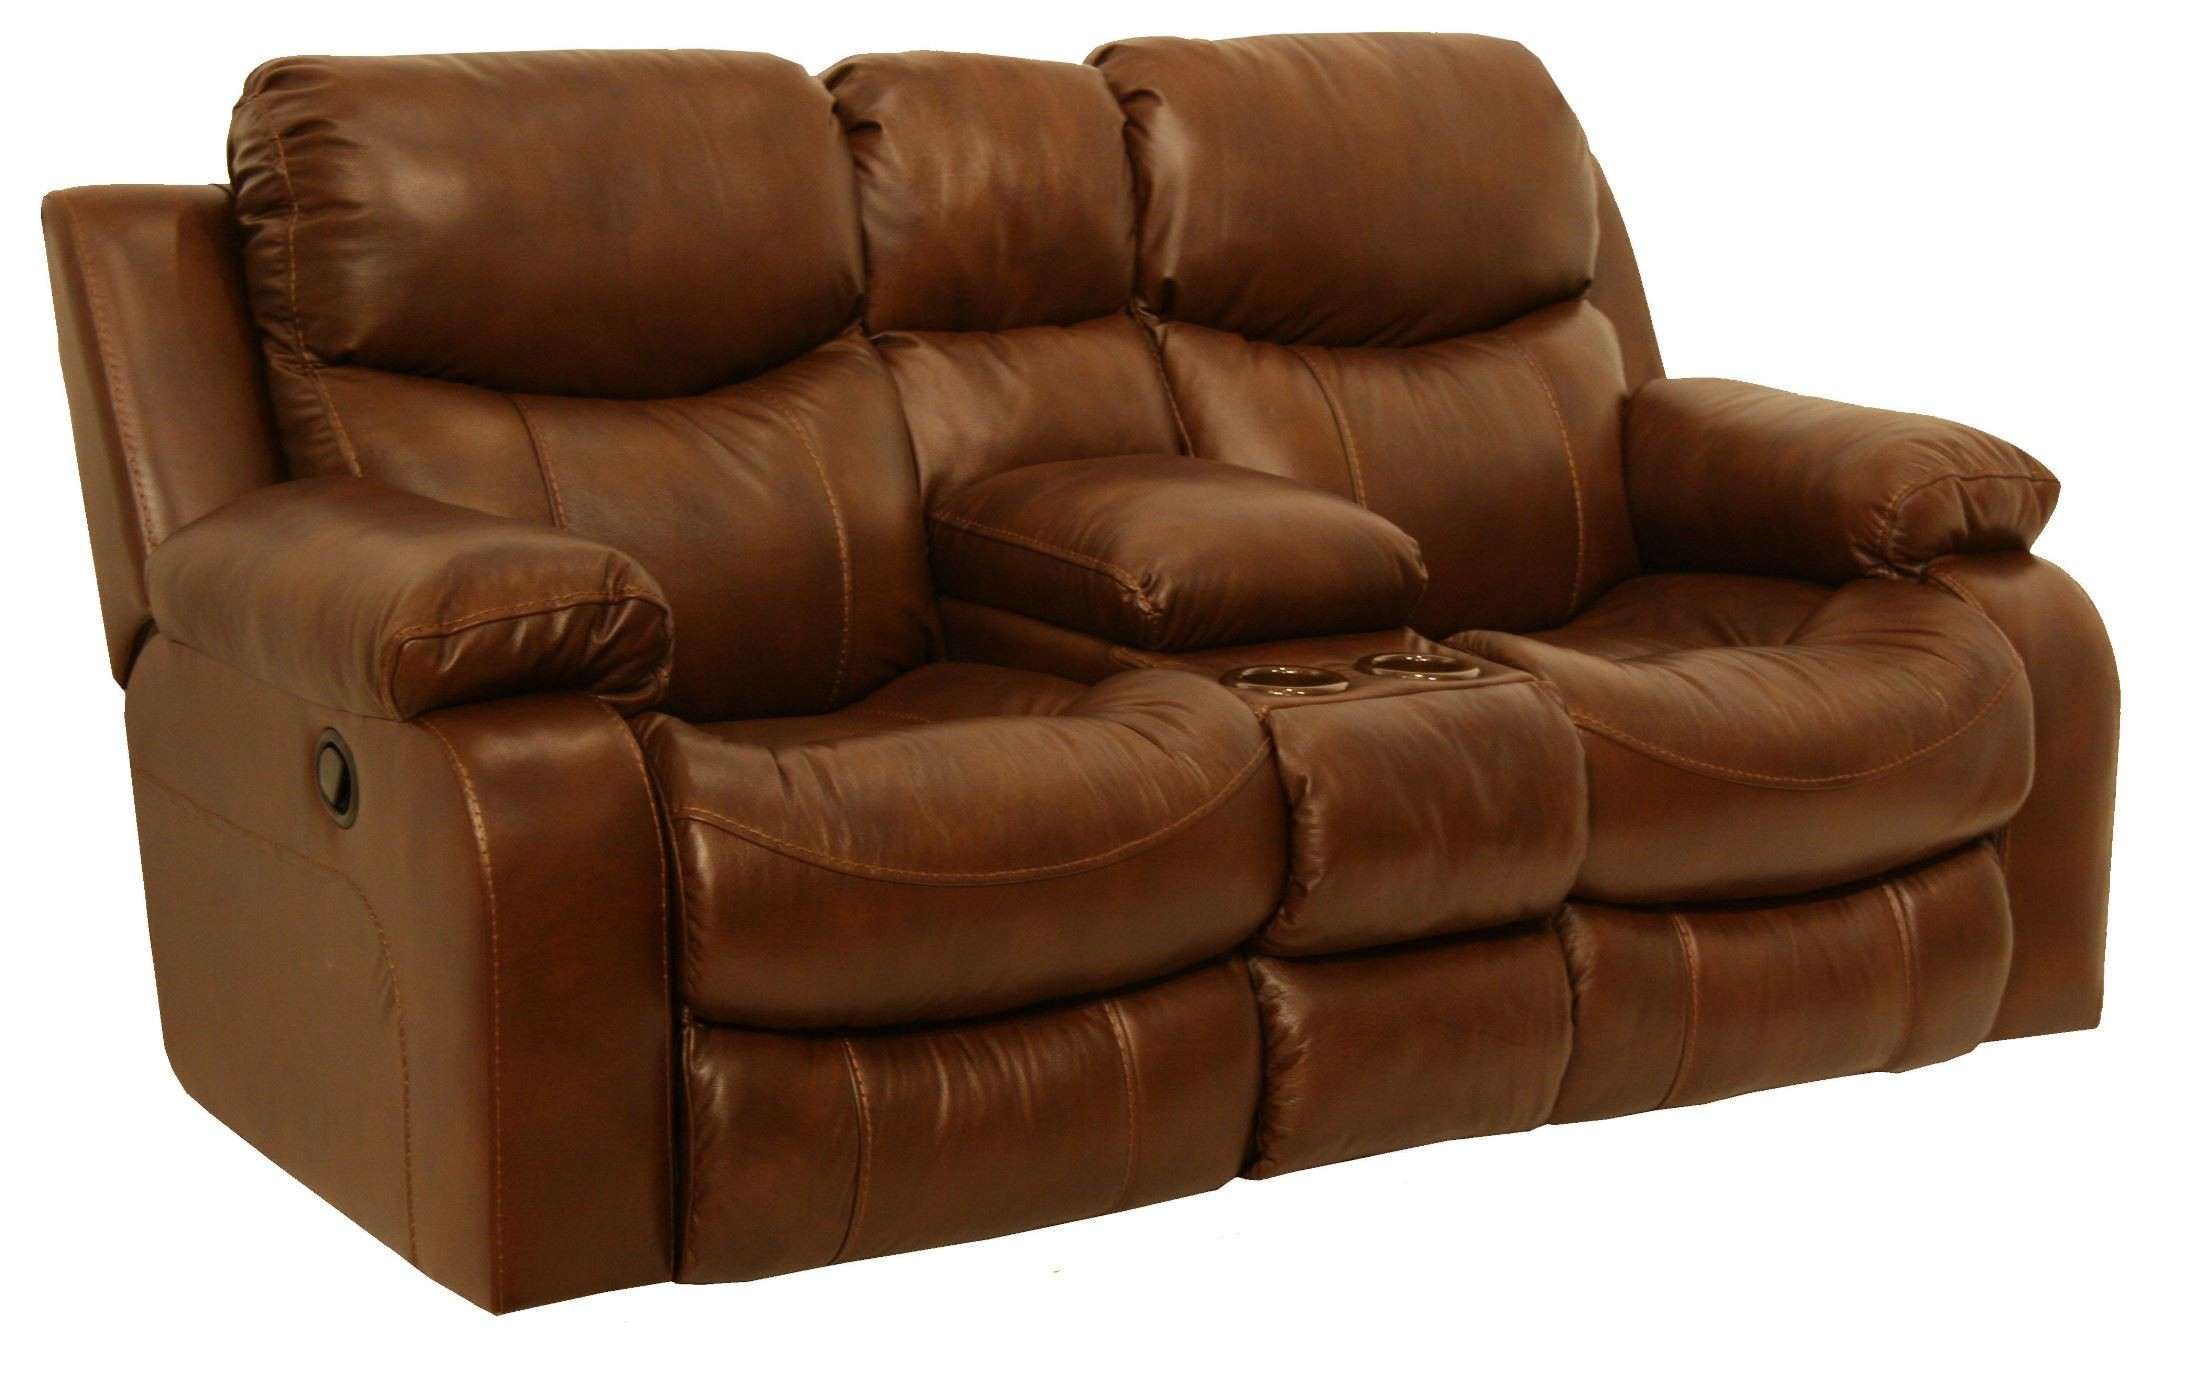 power reclining sofa made in usa apartment size sofas and loveseats dallas tobacco loveseat with console from